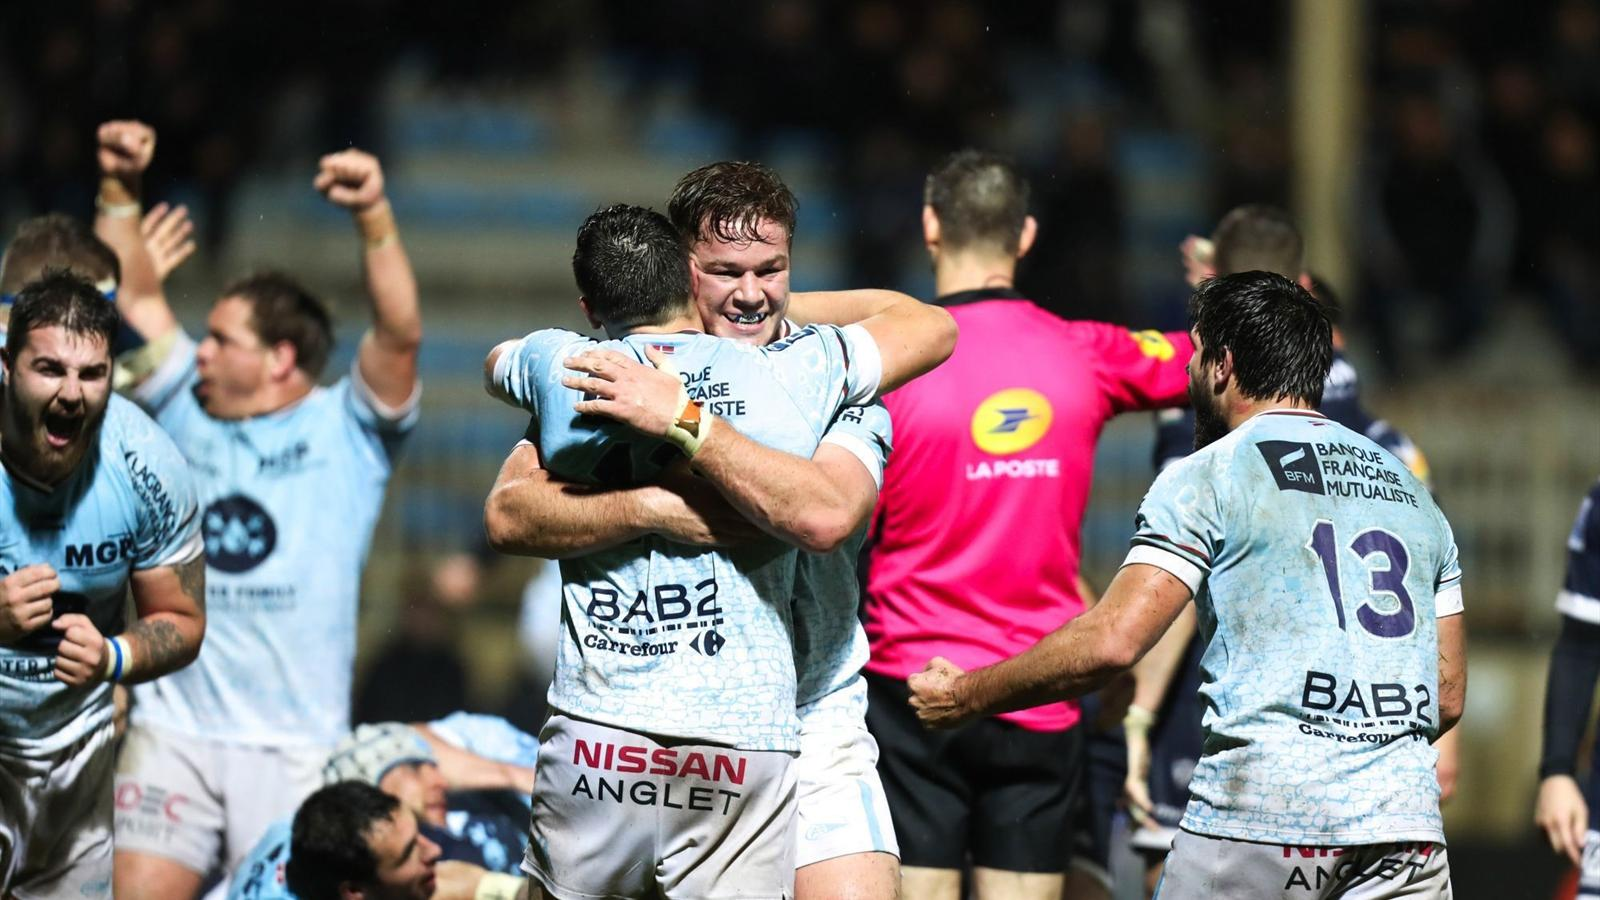 PRO D2 - Nevers still leader, press Bourg-en-Bresse's opponent, Béziers in the top 5 - Rugbyrama.fr